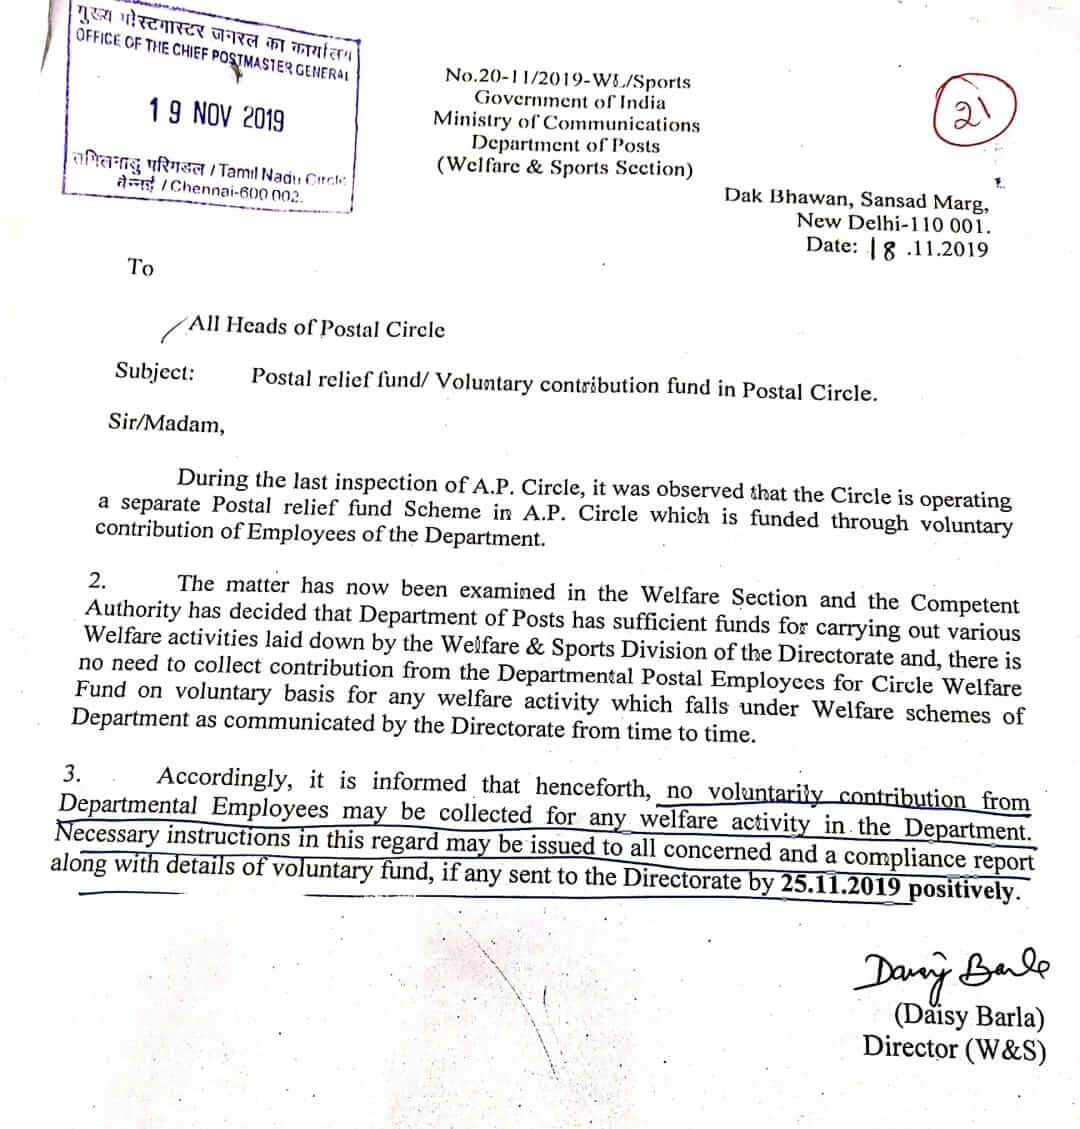 No voluntarily contribution or Postal Relief Fund from India Post Government Employees for any welfare activity in the Department